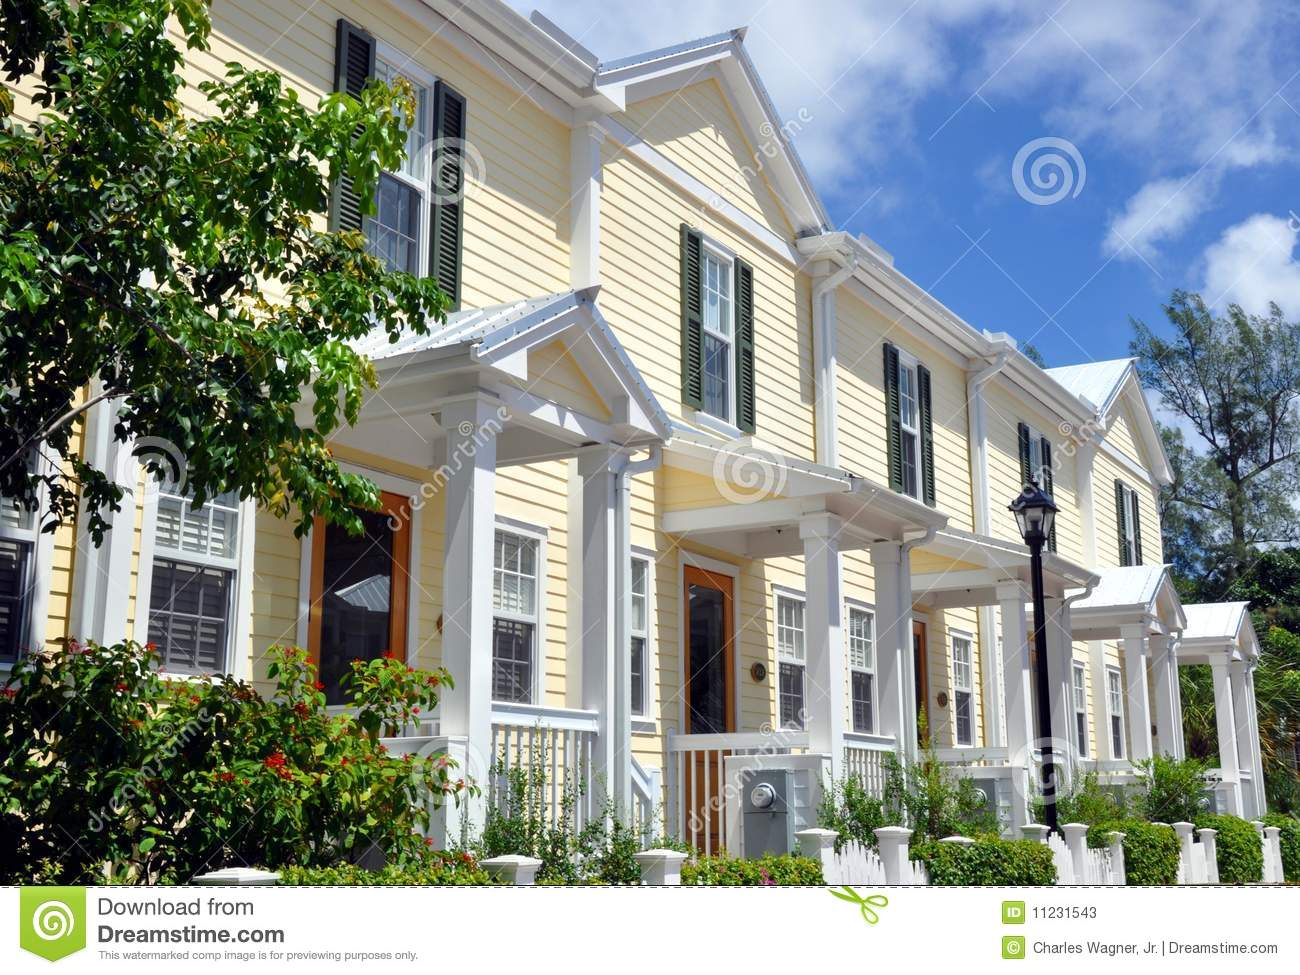 Key west style architecture stock photos image 11231543 for Key west architecture style